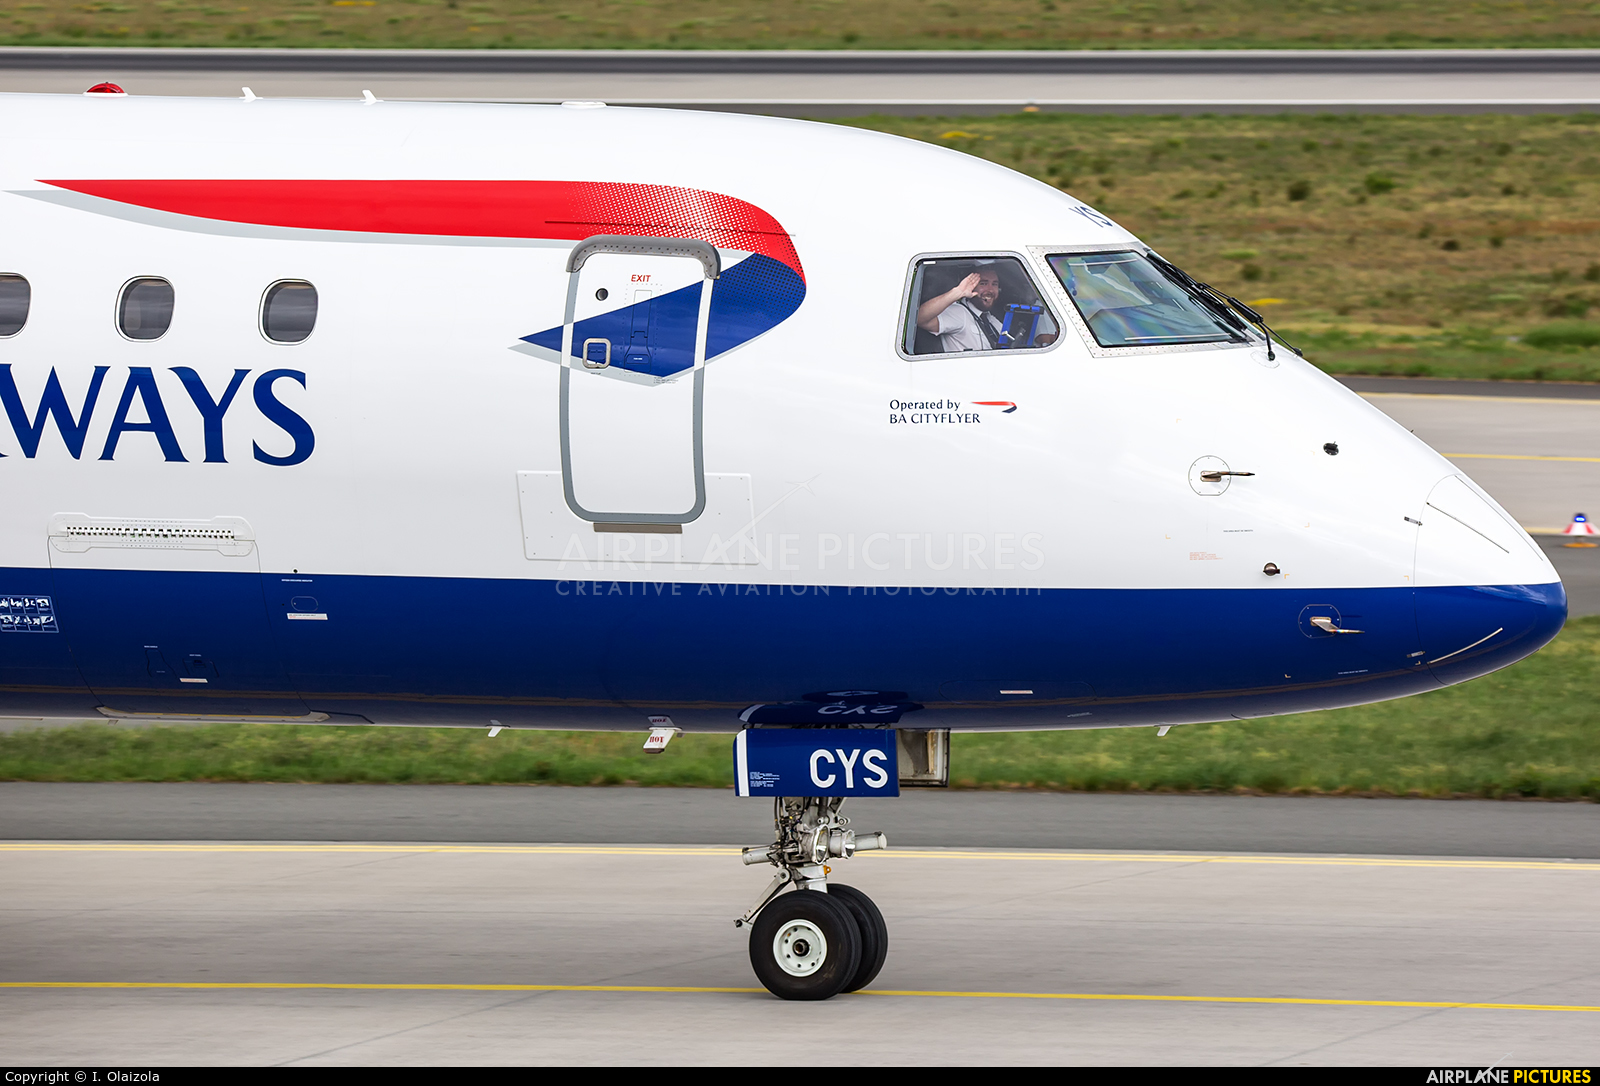 British Airways - City Flyer G-LCYS aircraft at Frankfurt